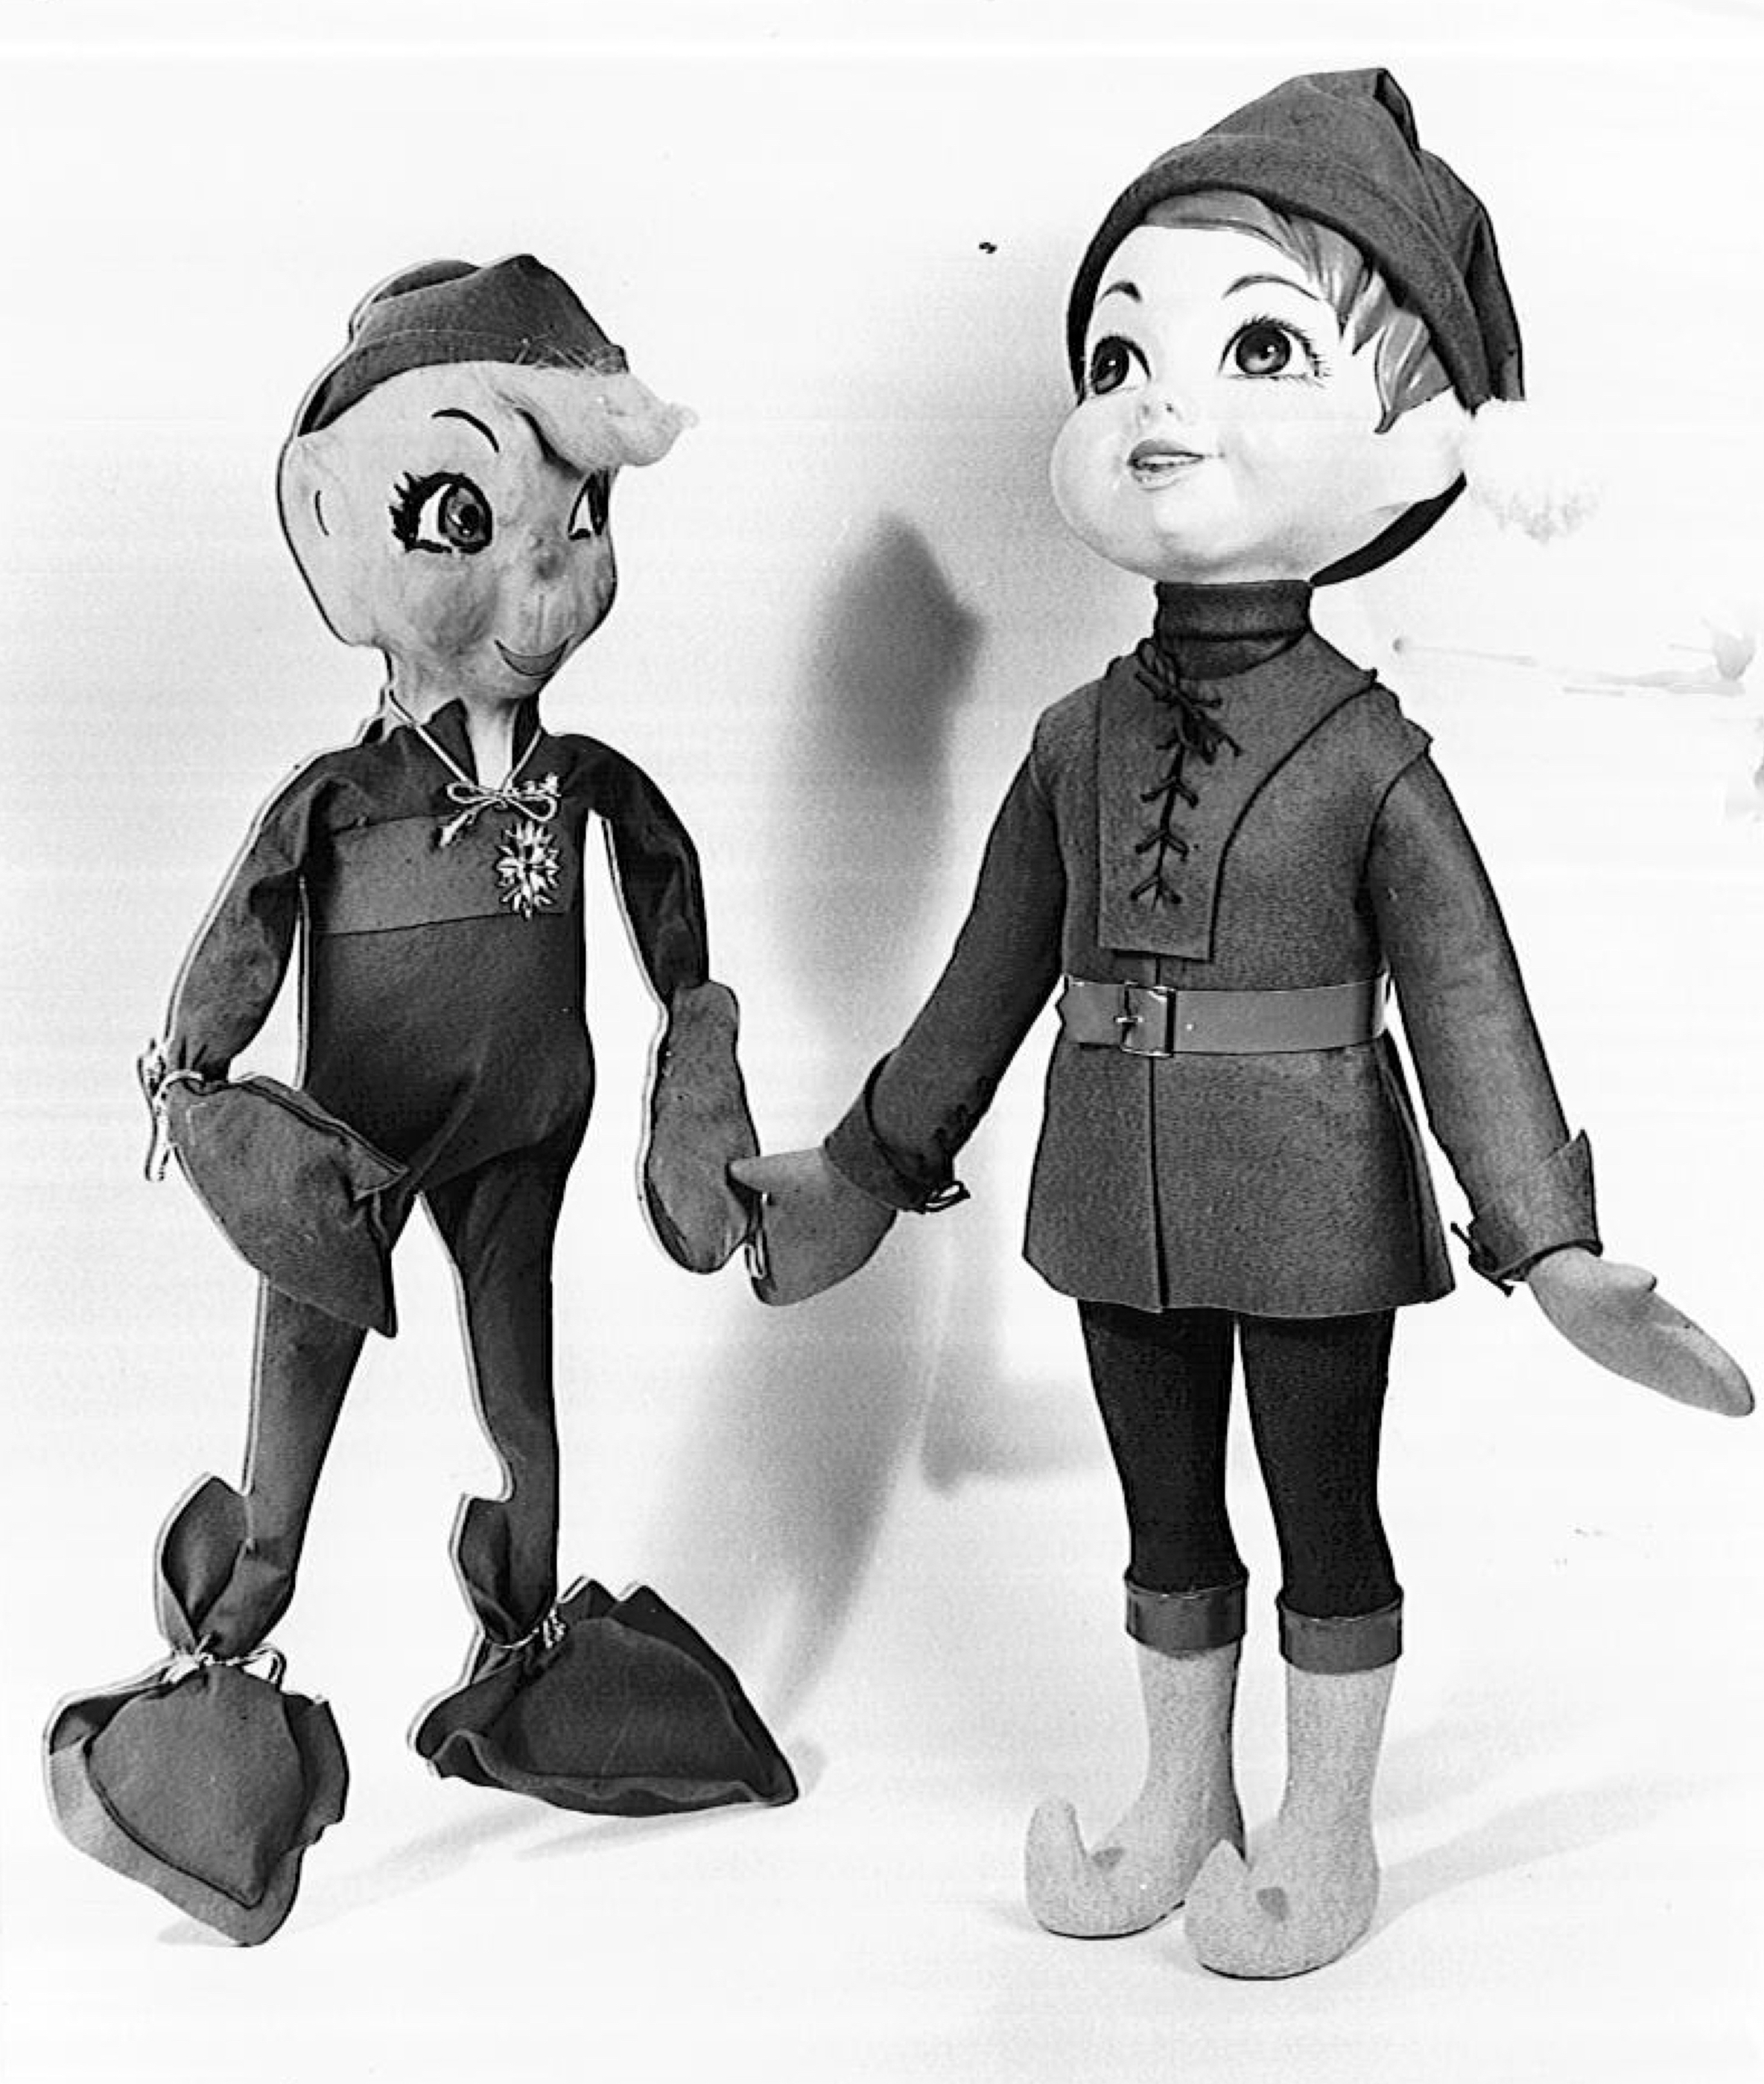 <table class=&quot;lightbox&quot;><tr><td colspan=2 class=&quot;lightbox-title&quot;>Billie the Brownie Figurine</td></tr><tr><td colspan=2 class=&quot;lightbox-caption&quot;>In 1973, Gimbel's revived Billie the Brownie by updating the character's look and producing figurines, like this one, that were used as props in storefront displays.</td></tr><tr><td colspan=2 class=&quot;lightbox-spacer&quot;></td></tr><tr class=&quot;lightbox-detail&quot;><td class=&quot;cell-title&quot;>Source: </td><td class=&quot;cell-value&quot;>From the Milwaukee County Historical Society.<br /><a href=&quot;https://milwaukeehistory.net/&quot; target=&quot;_blank&quot;>Milwaukee County Historical Society</a></td></tr><tr class=&quot;filler-row&quot;><td colspan=2>&nbsp;</td></tr></table>